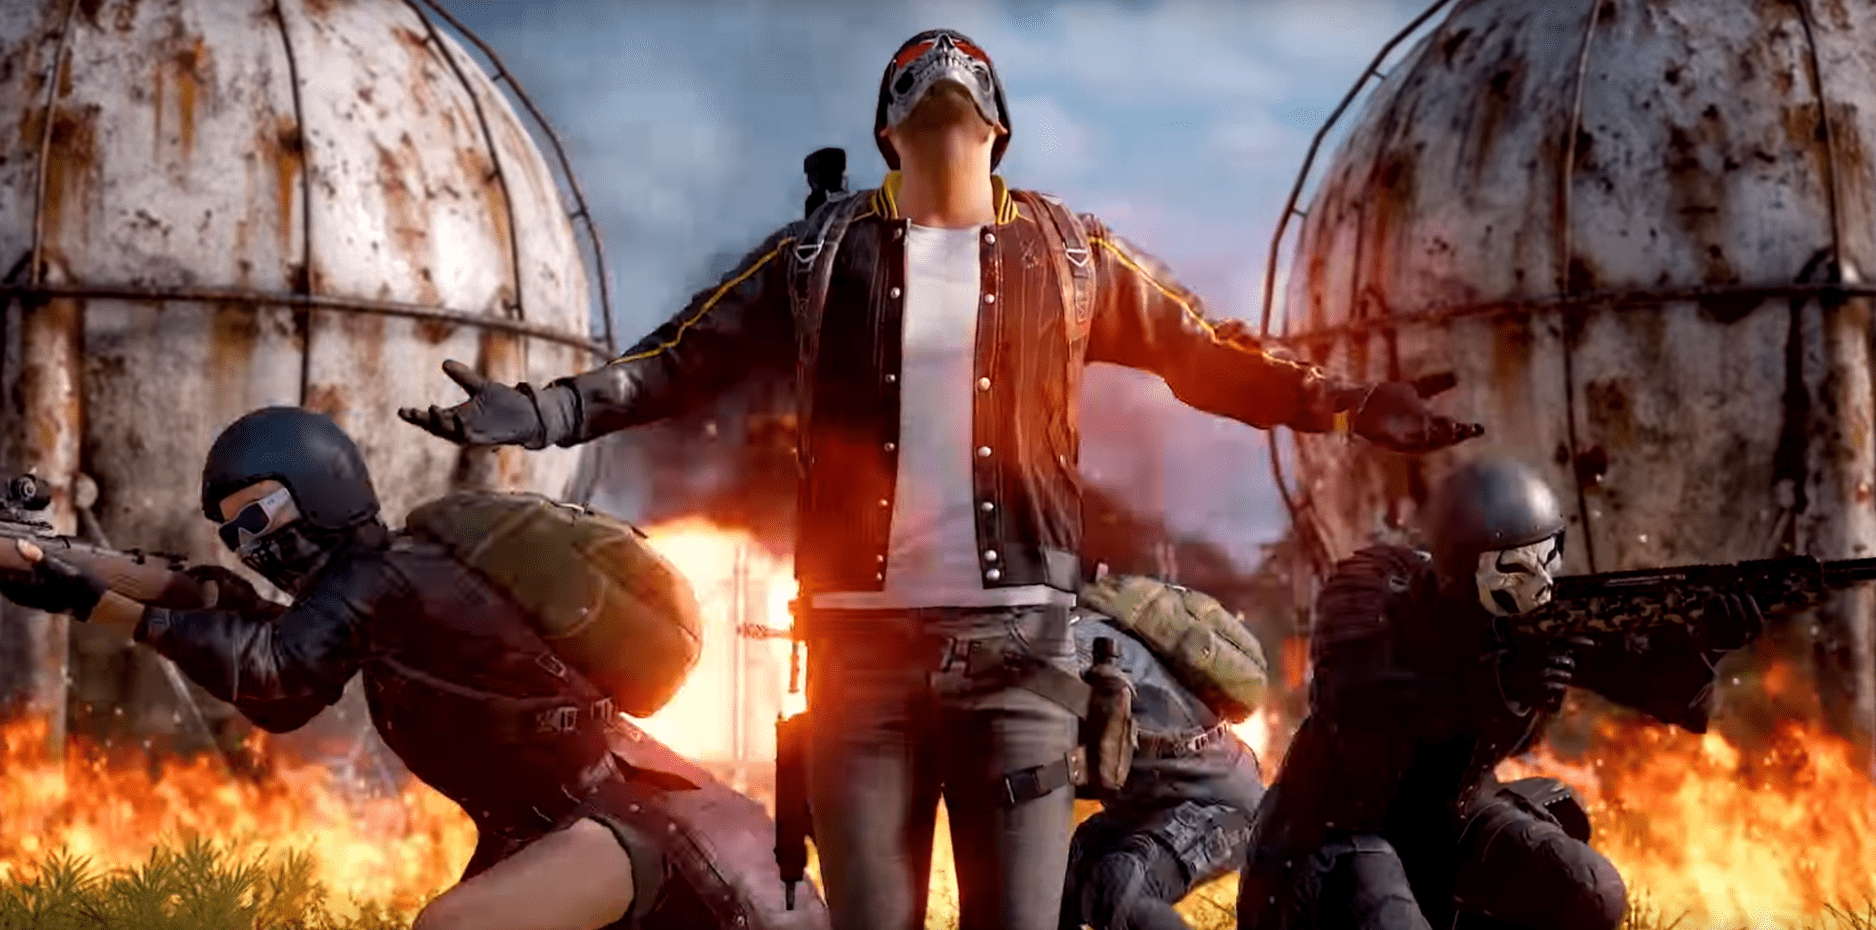 There's Only One Day Left For PUBG Gamers To Submit A Clip For The 2019 PUBG Awards. Get A Crazy Kill With The Win94!